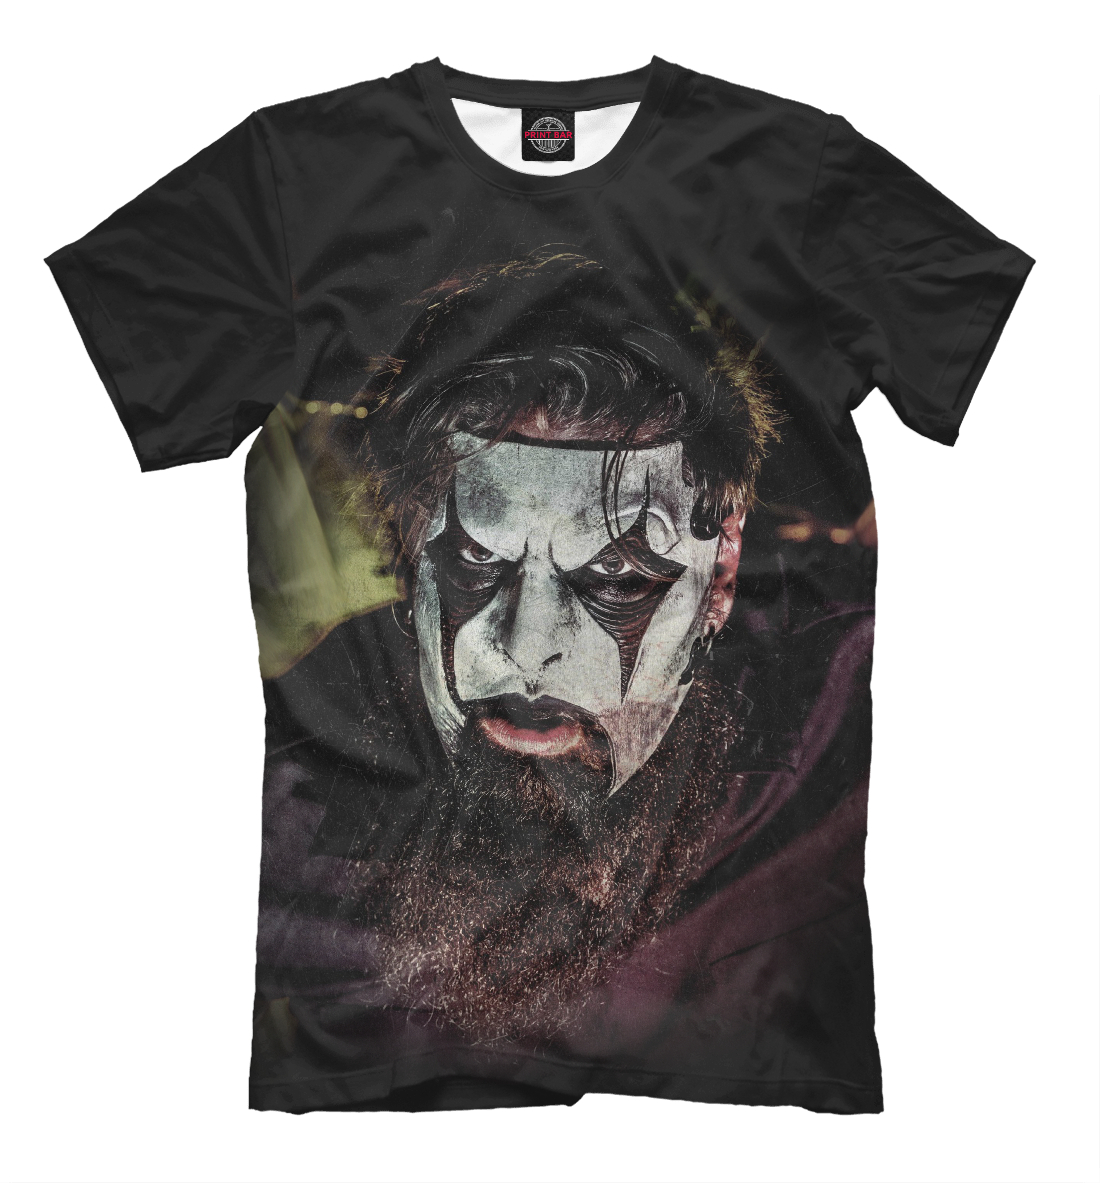 Купить Jim Root. Slipknot., Printbar, Футболки, SLI-634904-fut-2